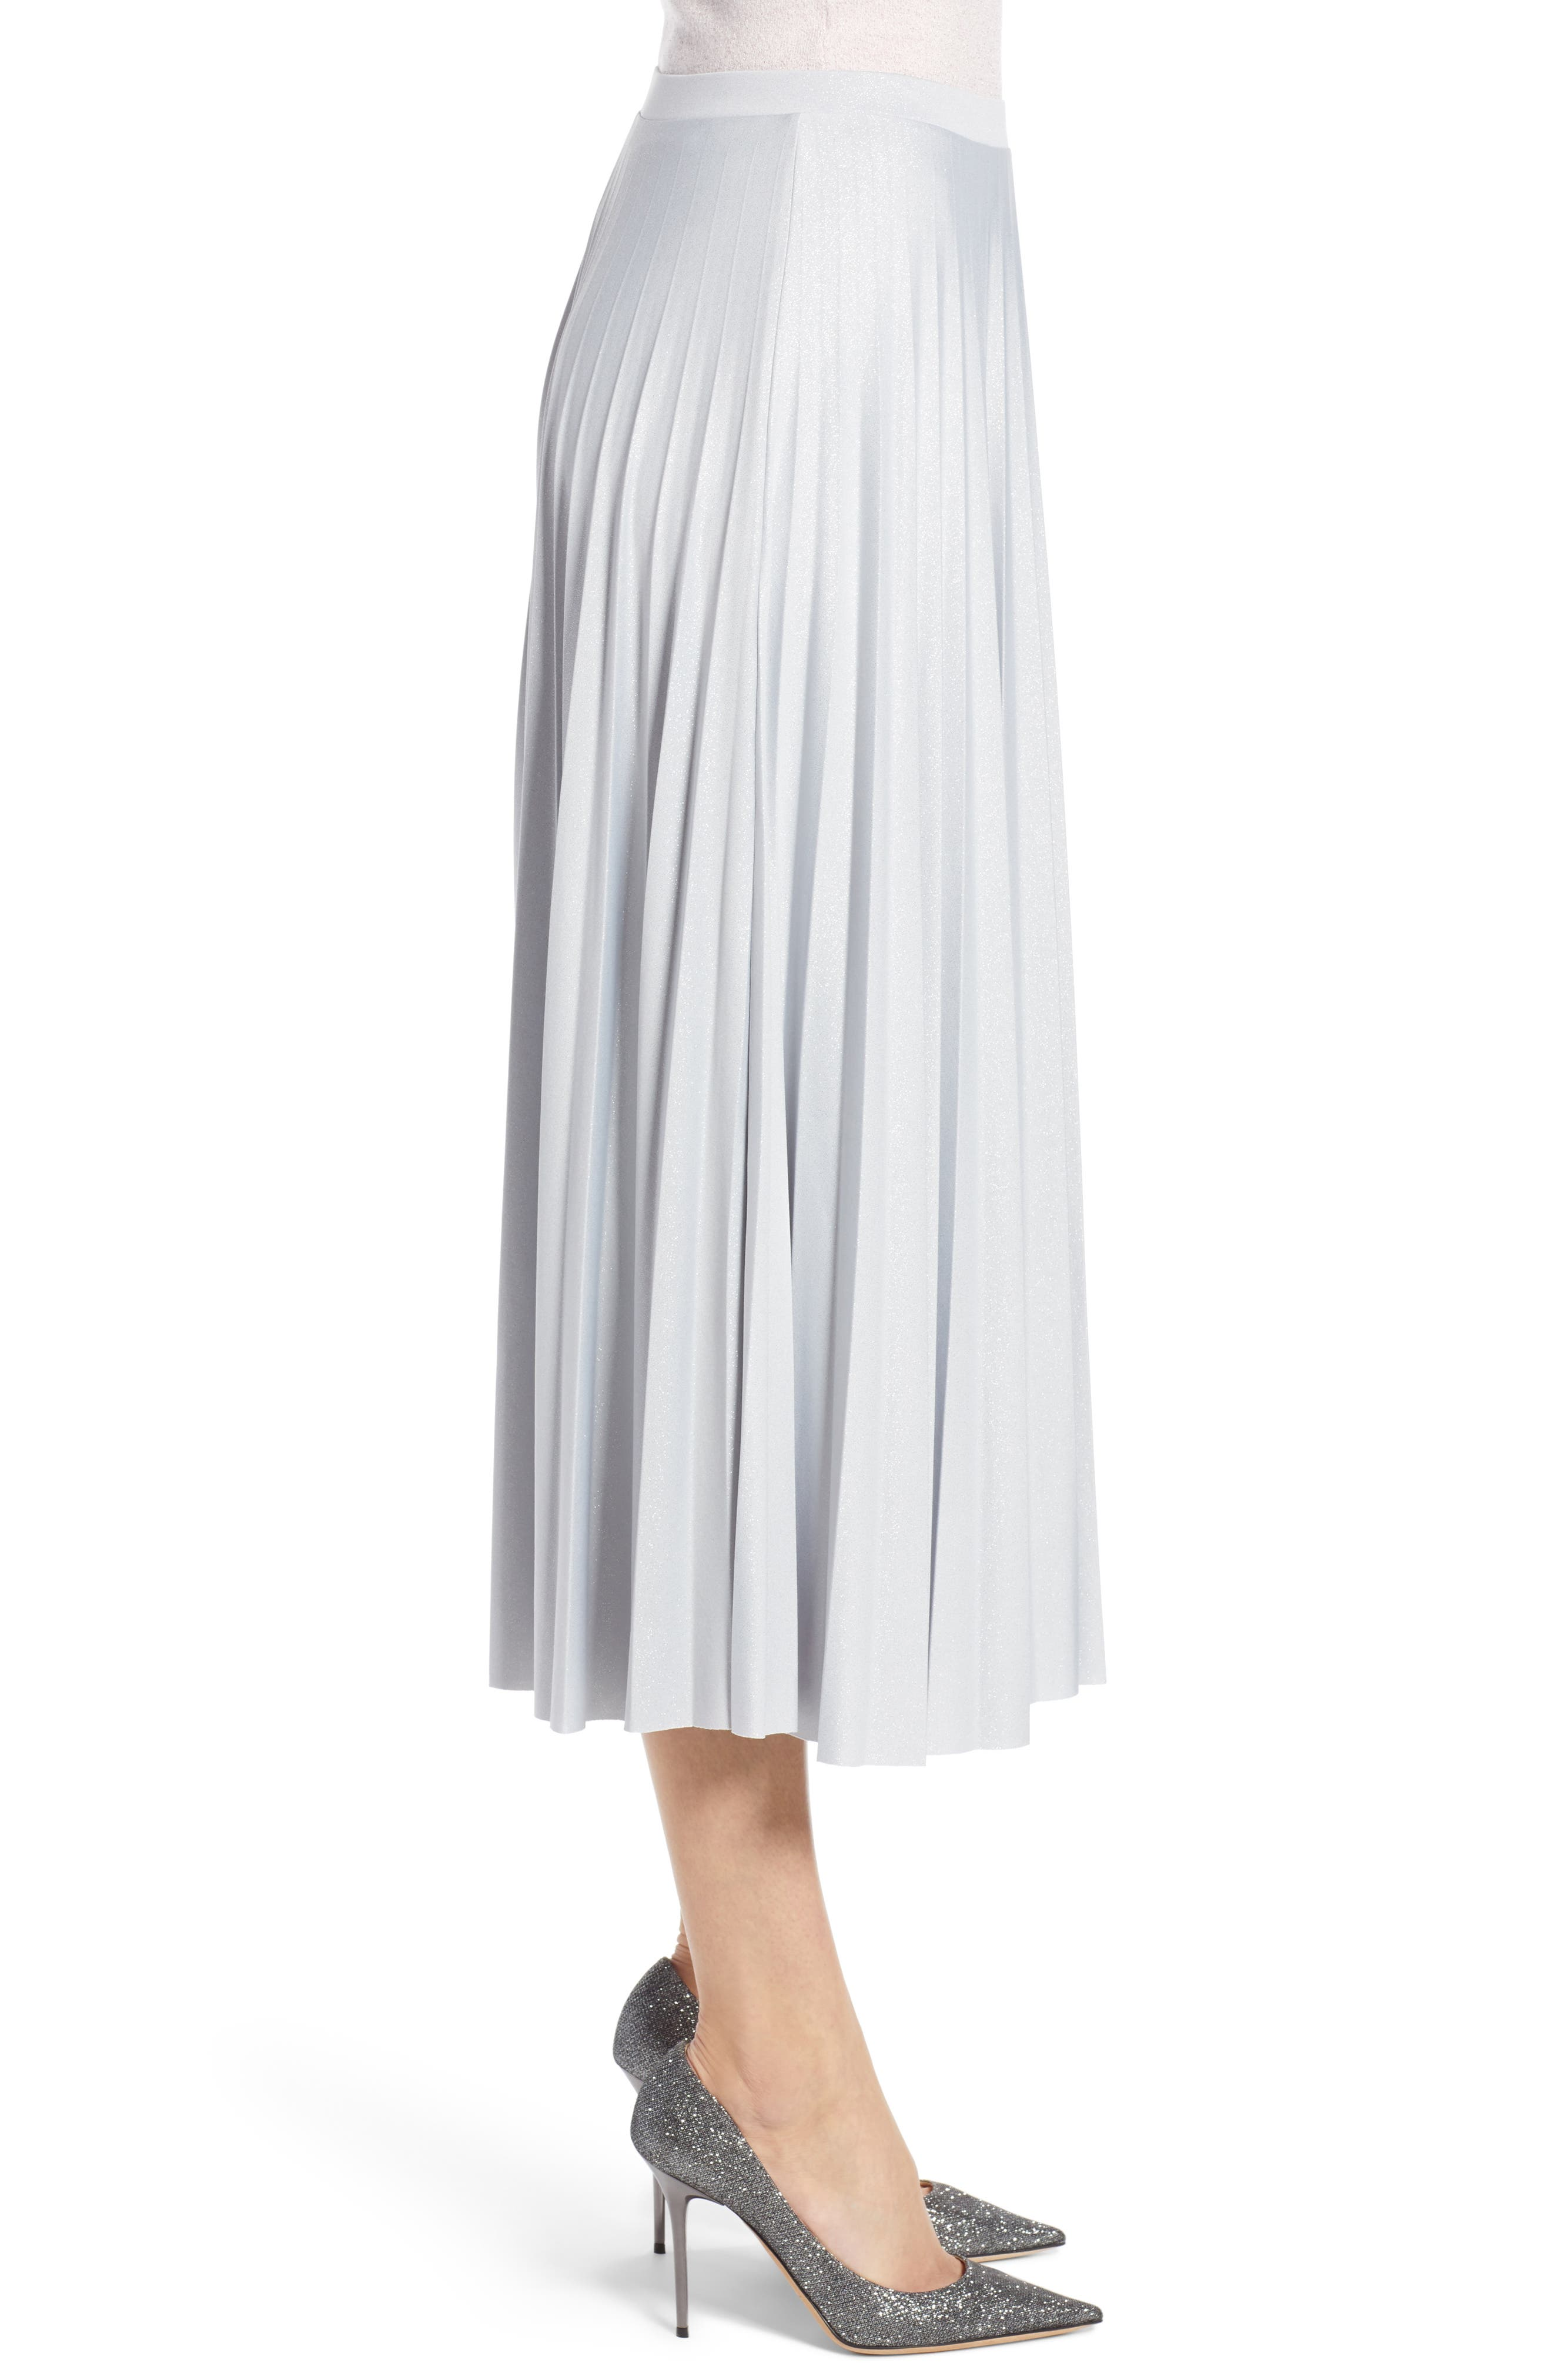 Metallic Pleat Midi Skirt,                             Alternate thumbnail 3, color,                             GREY- SILVER FOIL